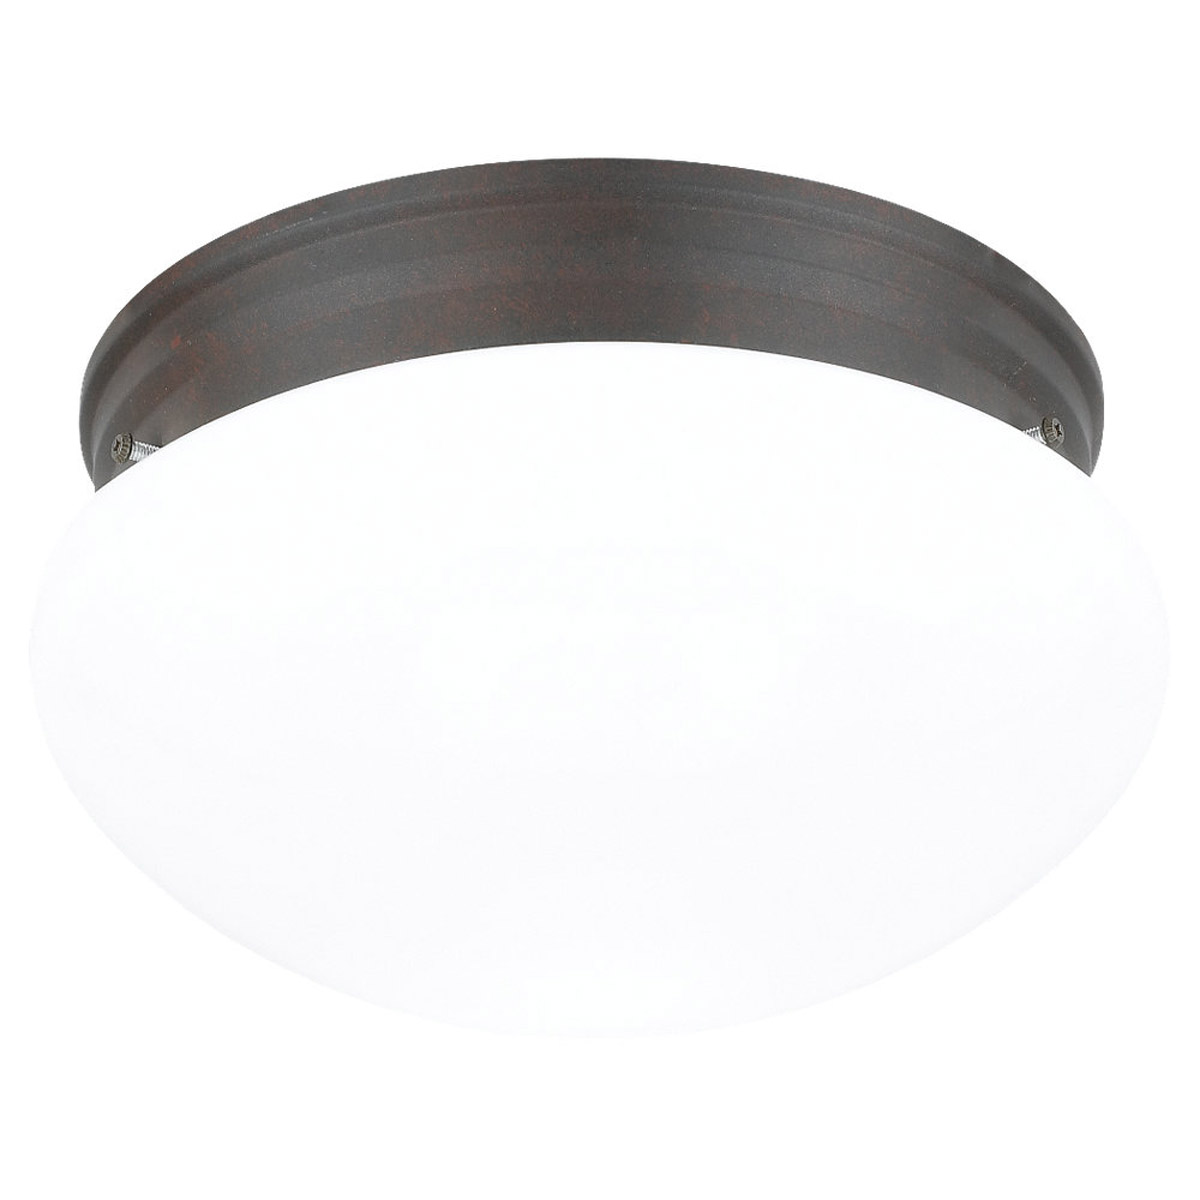 Sea Gull Lighting Webster 2 Light Flush Mount in Misted Bronze 5328-814